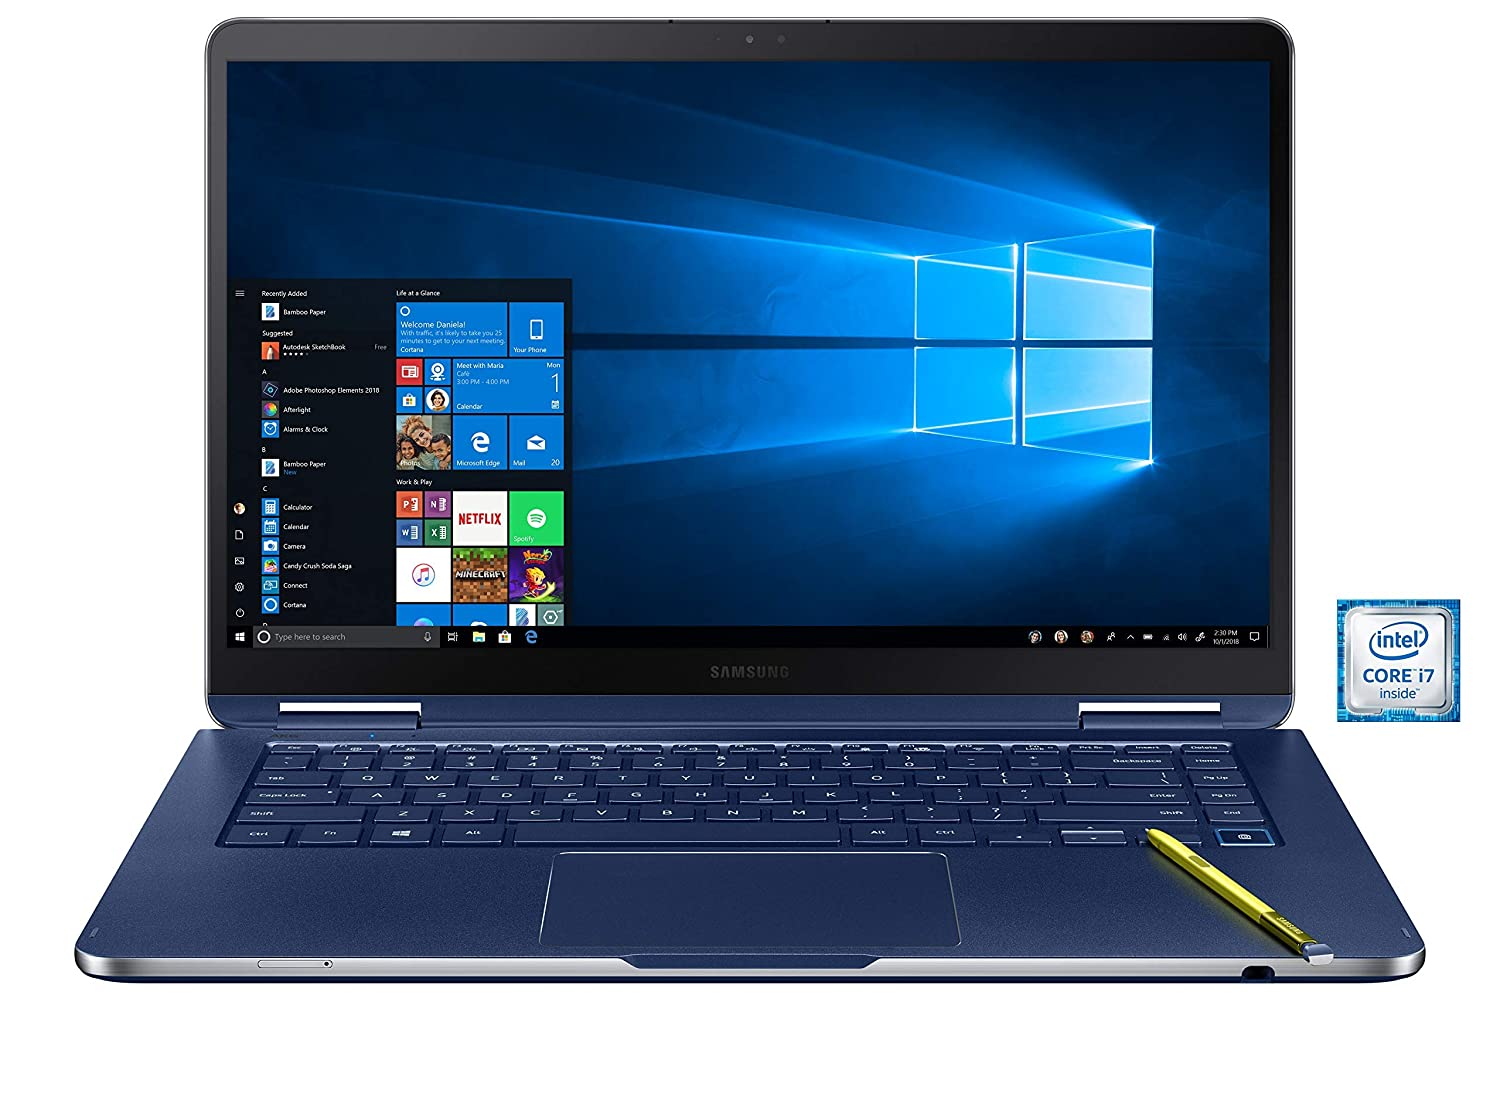 Amazon.com: Samsung Notebook 9 Pen 15